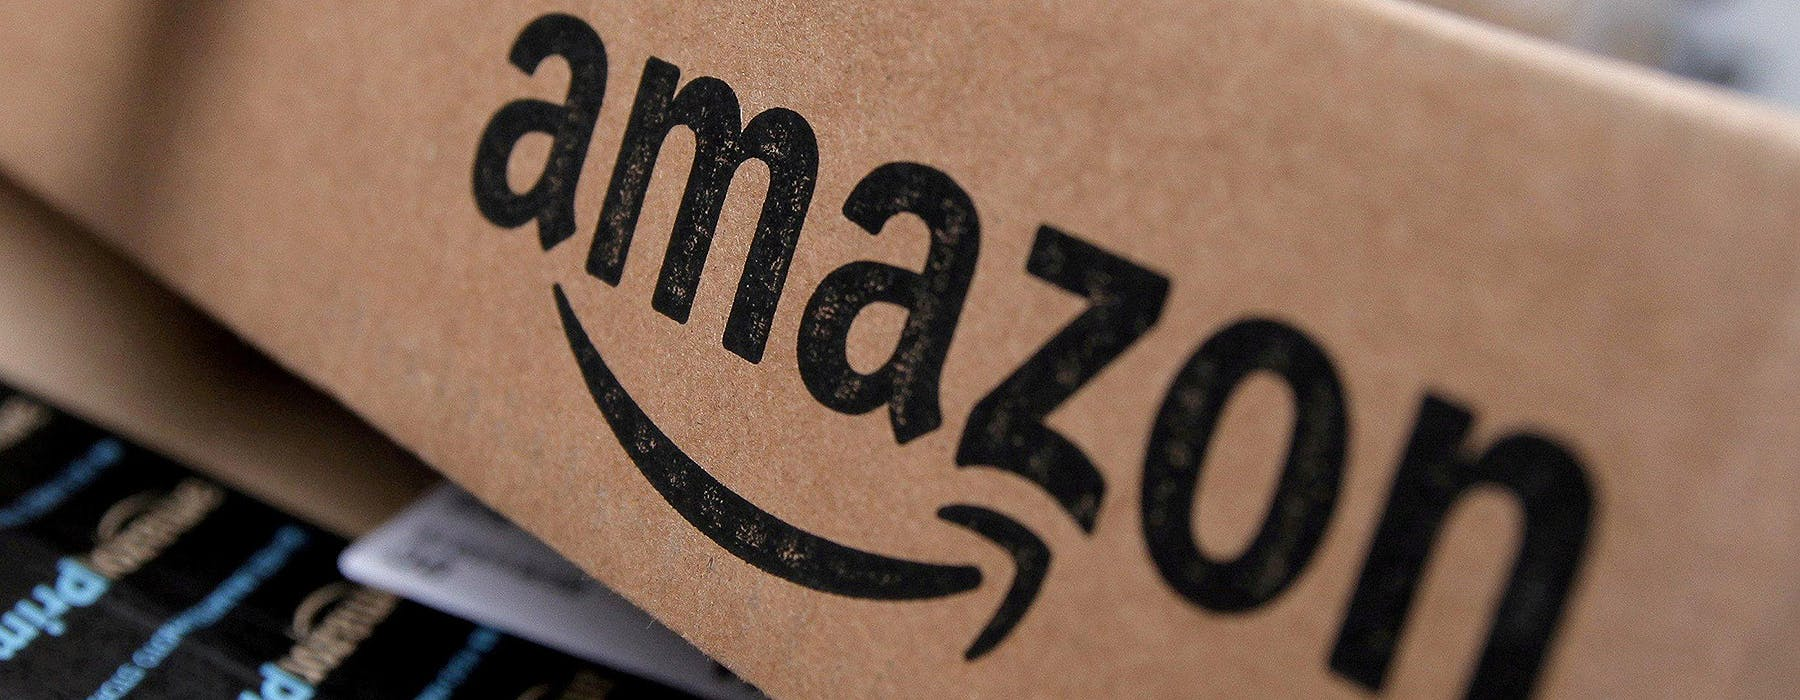 Could Amazon make packageless returns the new norm?